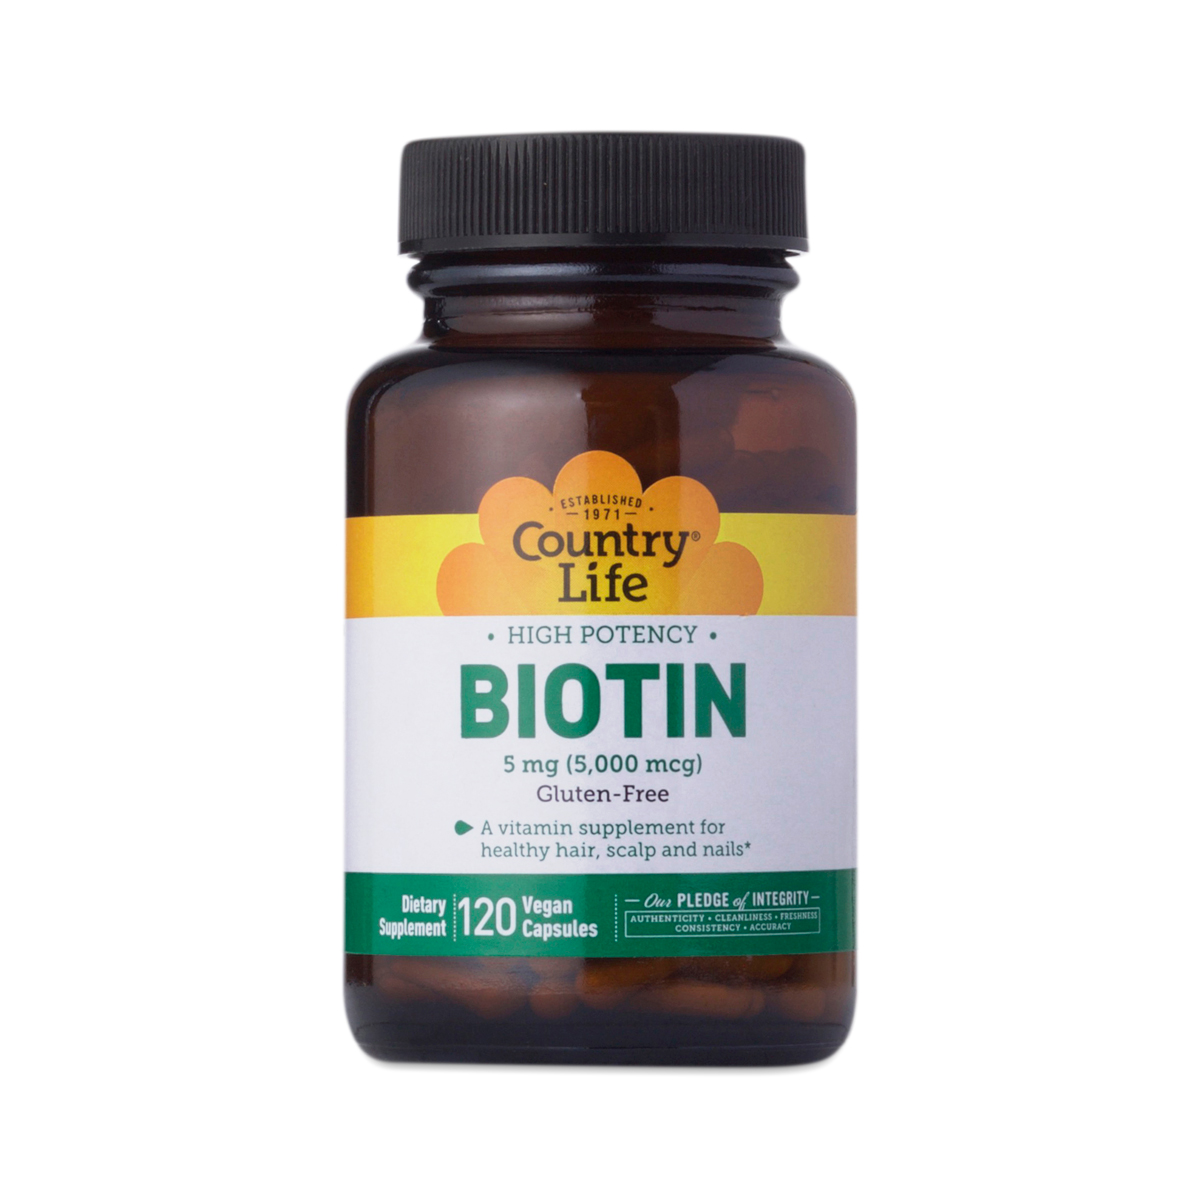 Country Life High Potency Biotin Vegetarian Capsules 120 vegan capsules